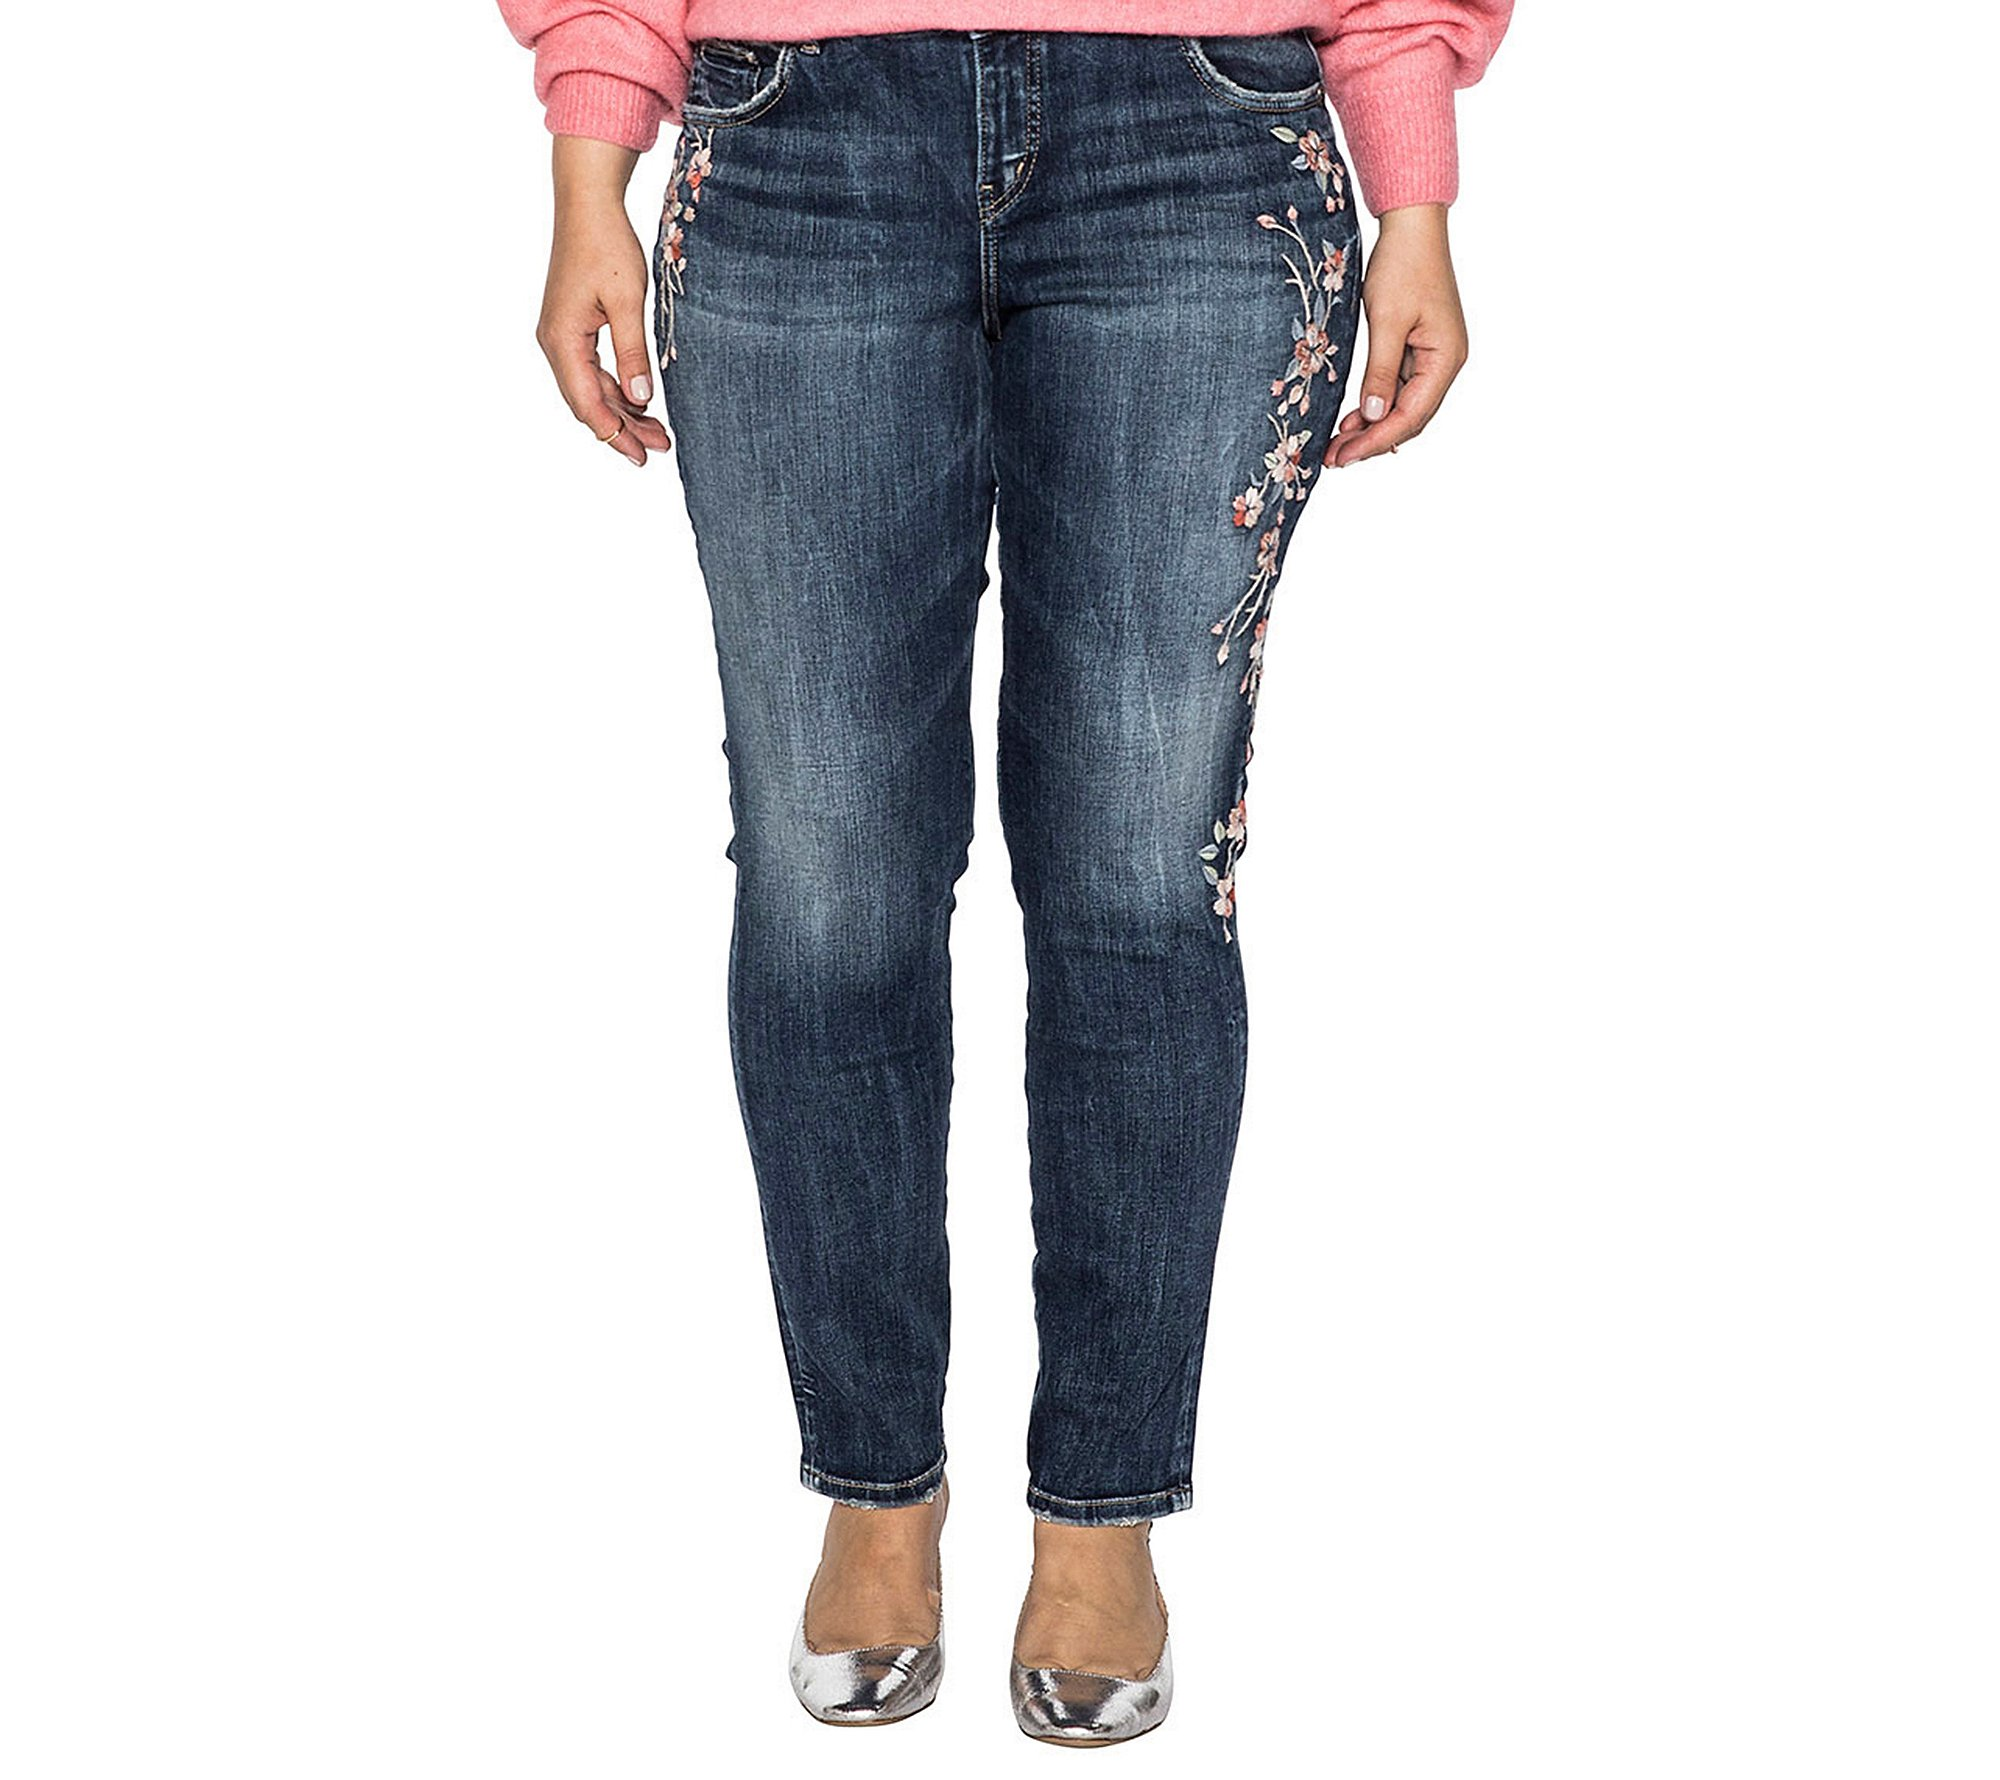 Silver Jeans Women's Plus Size Elyse Relaxed Fit Mid Rise Skinny Jeans, Vintage Indigo Embroidery, 18x29